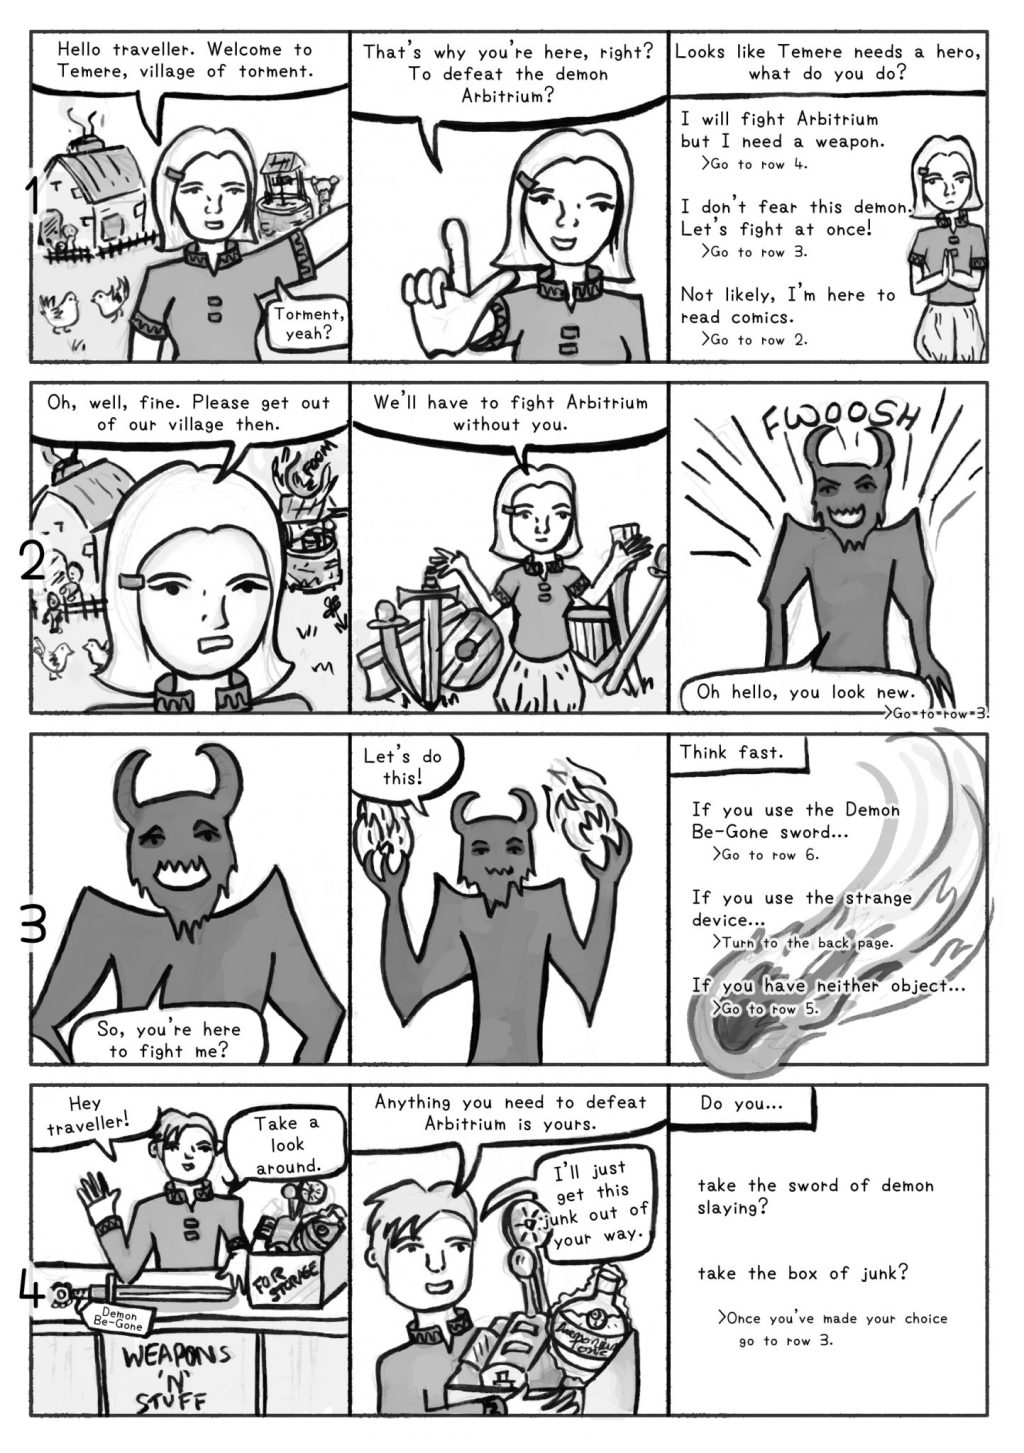 Choose Your Own Bad Decision comic page 1, a comic about how YOU can save a town.